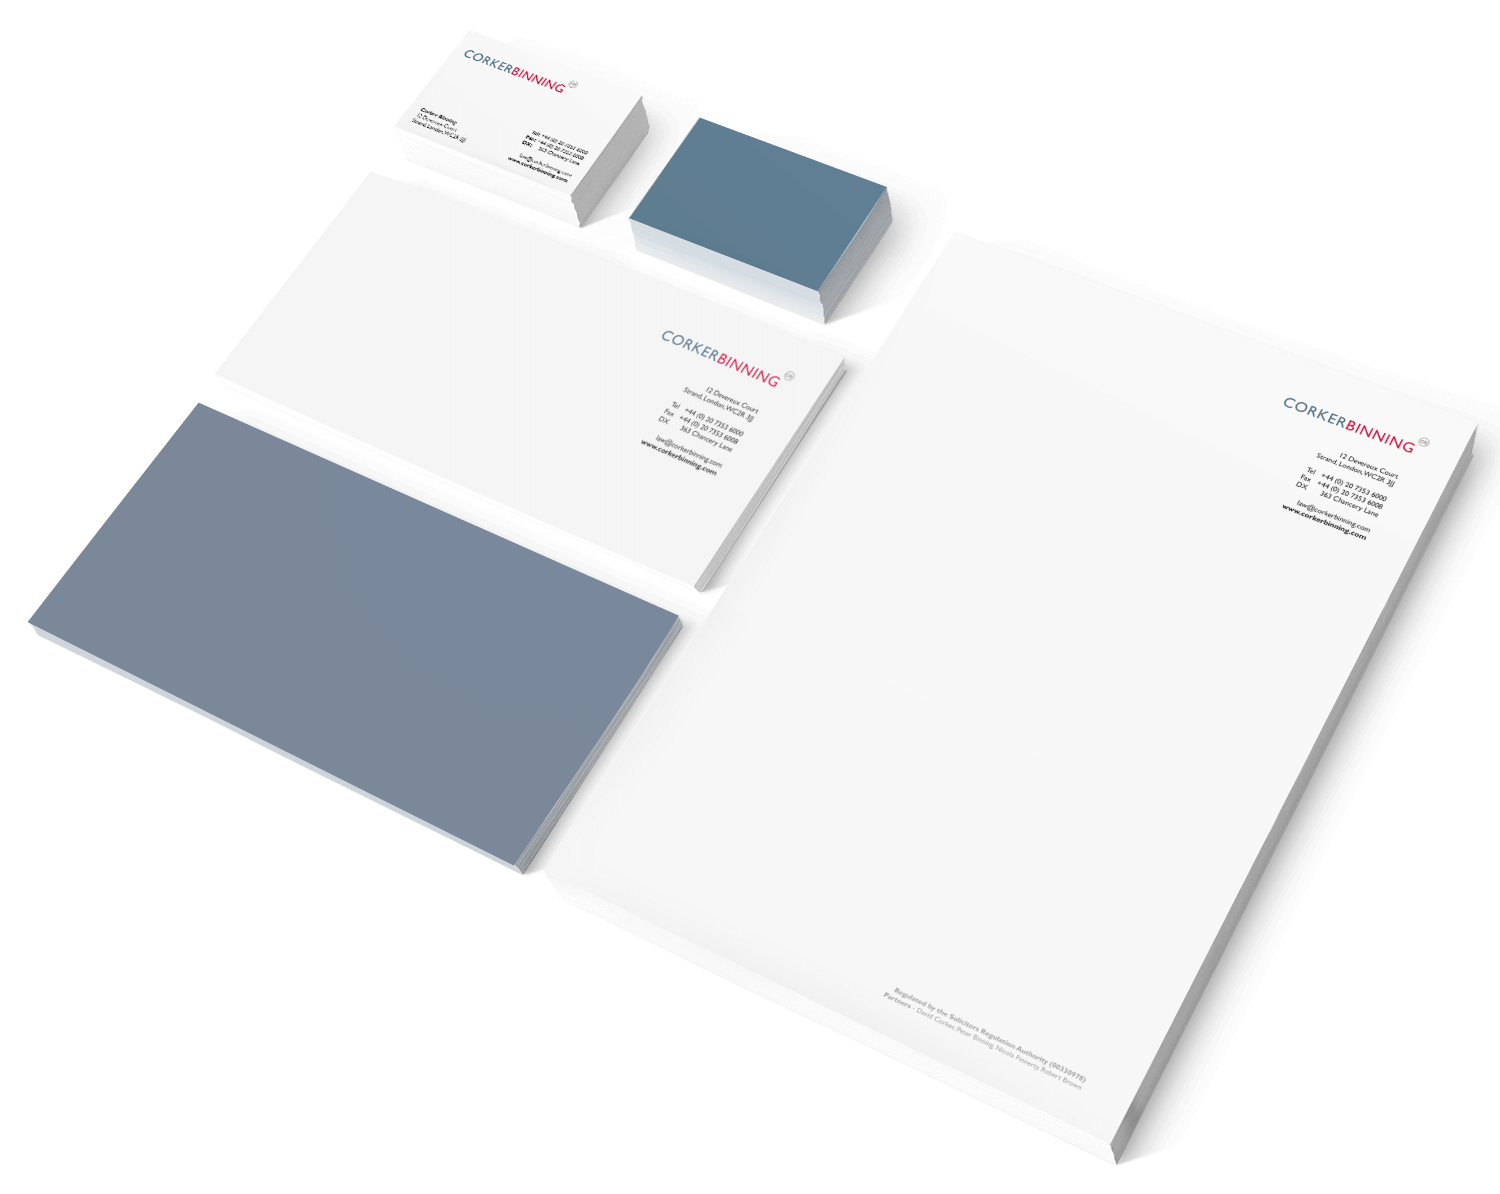 Creative business stationery design for Corker Binning